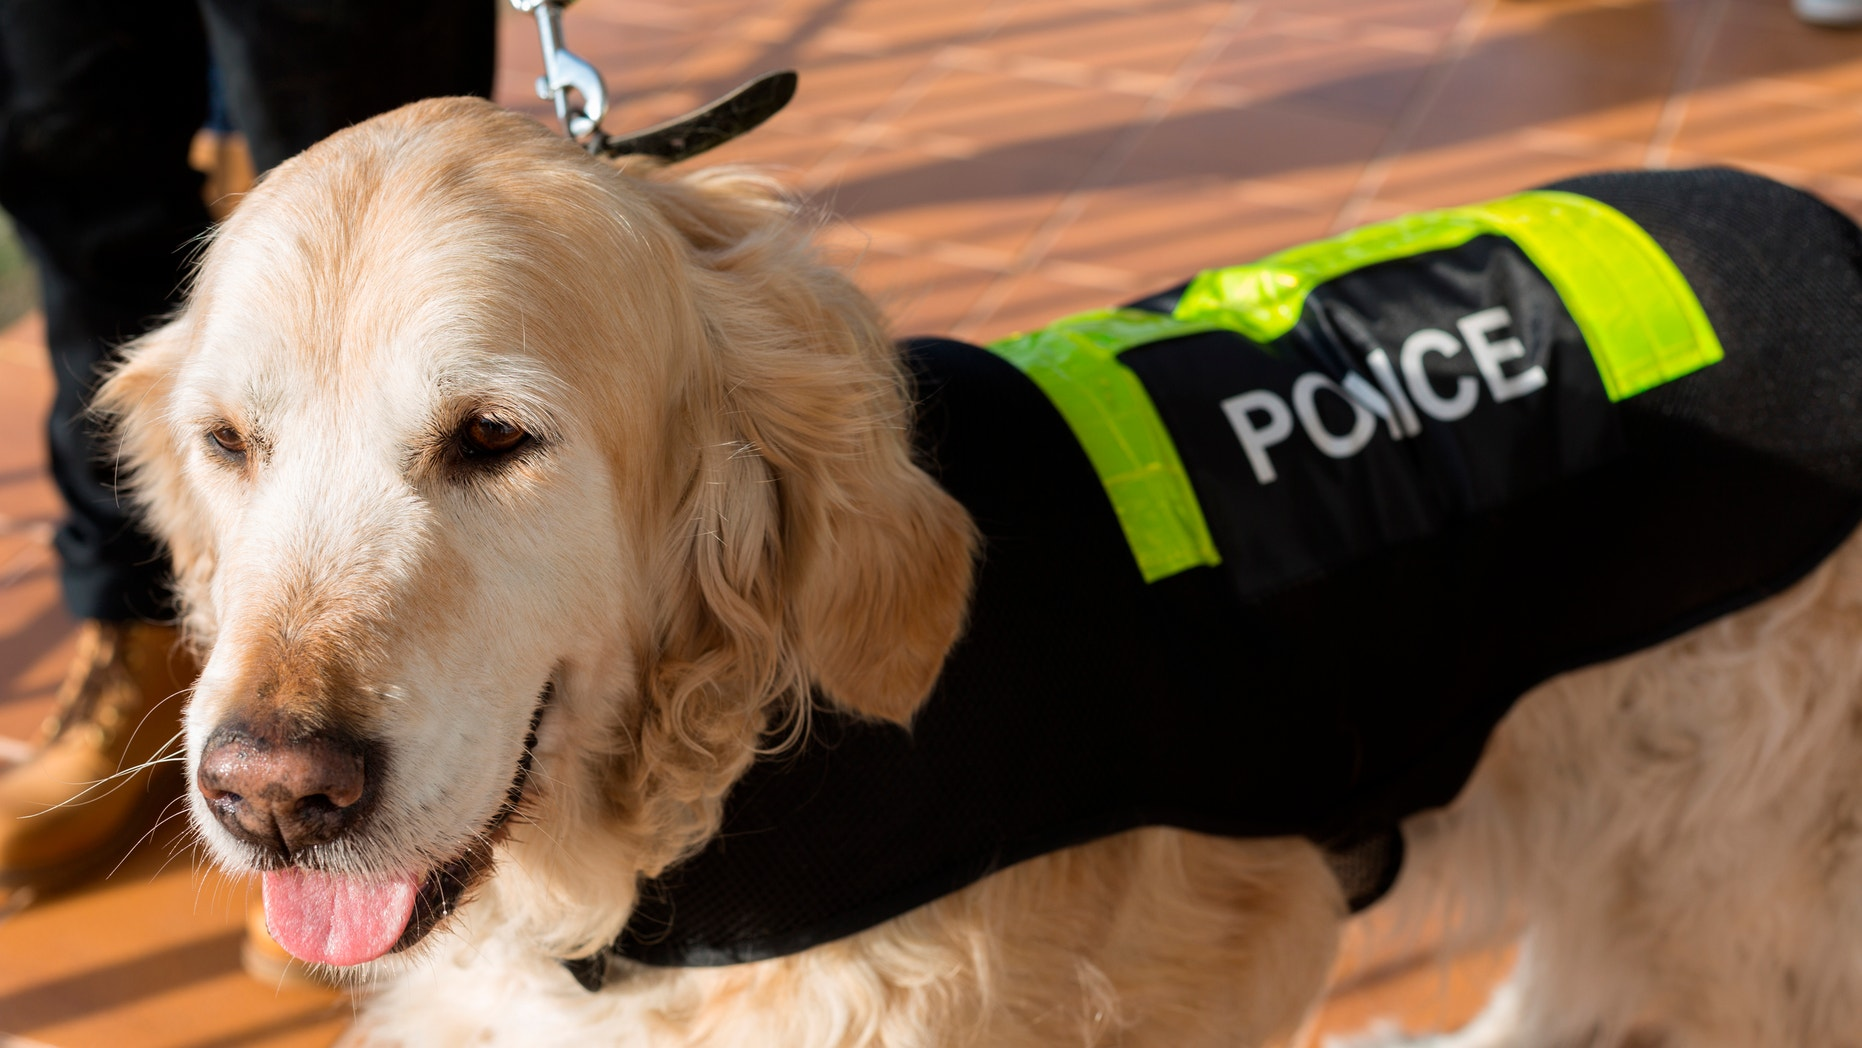 Golden Retriever dog with distinctive police